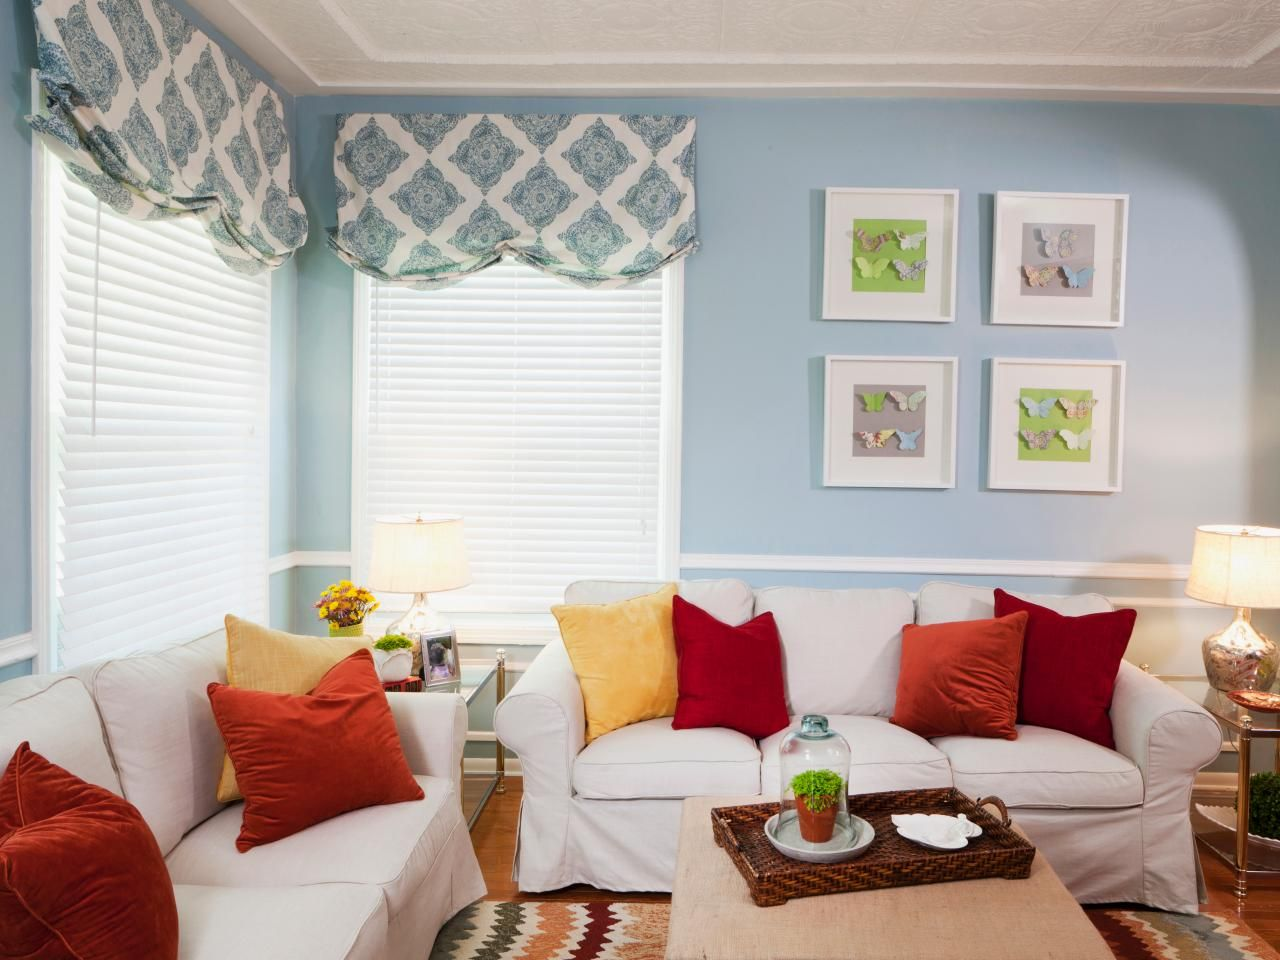 Light blue Transitional Living-rooms from Meg Caswell on HGTV